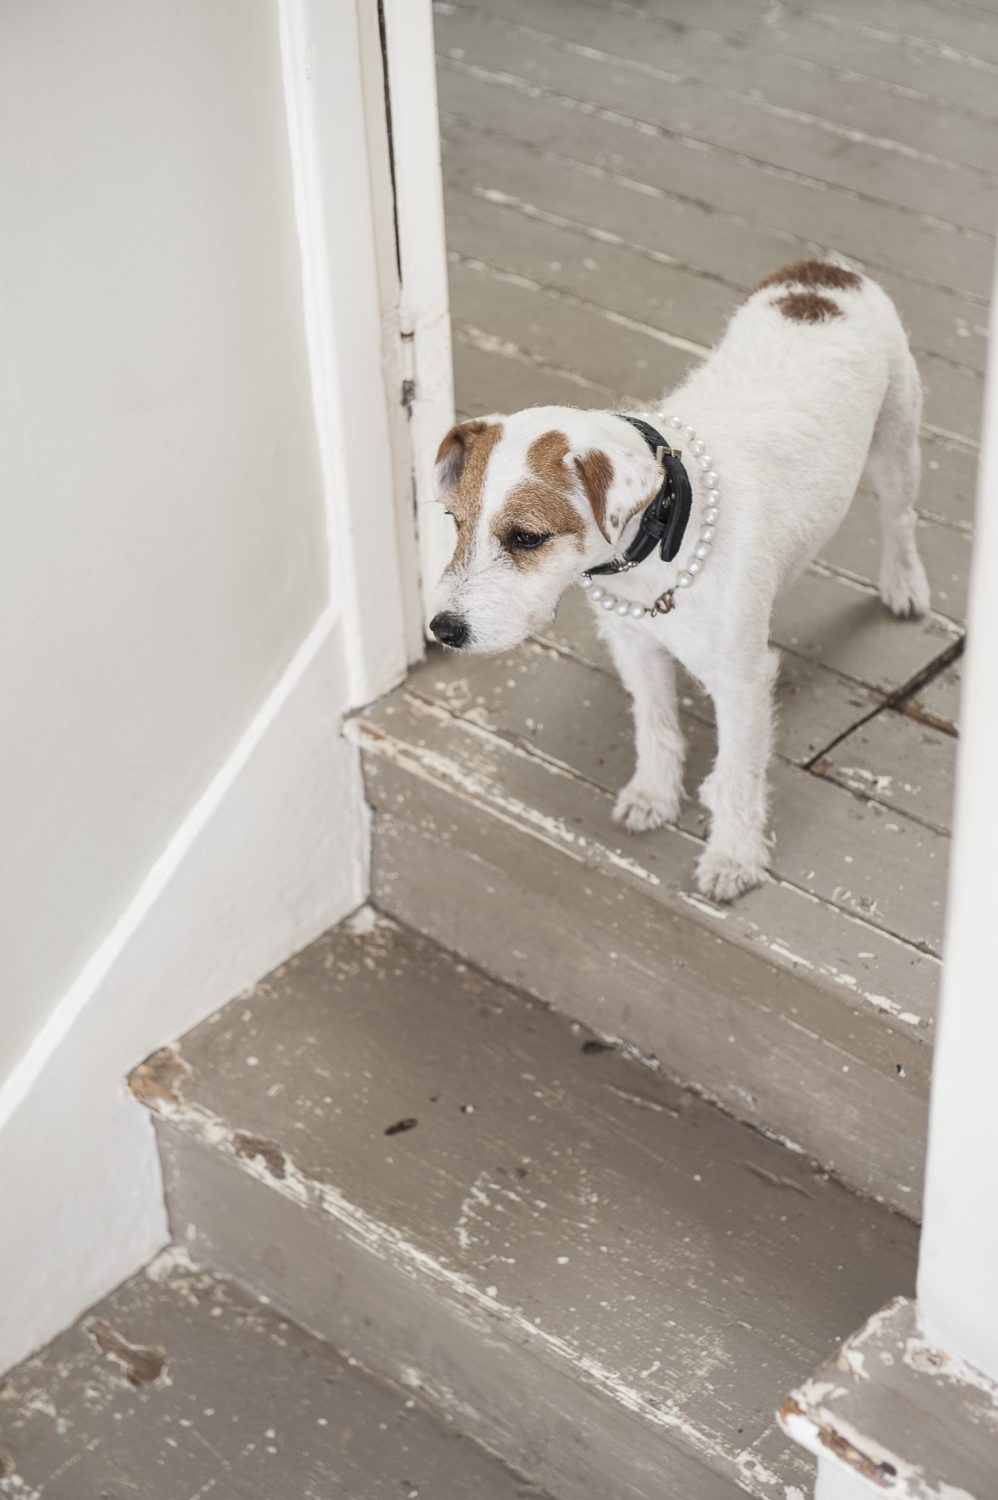 Lucy the Jack Russell poses for a photo in her pearl necklace